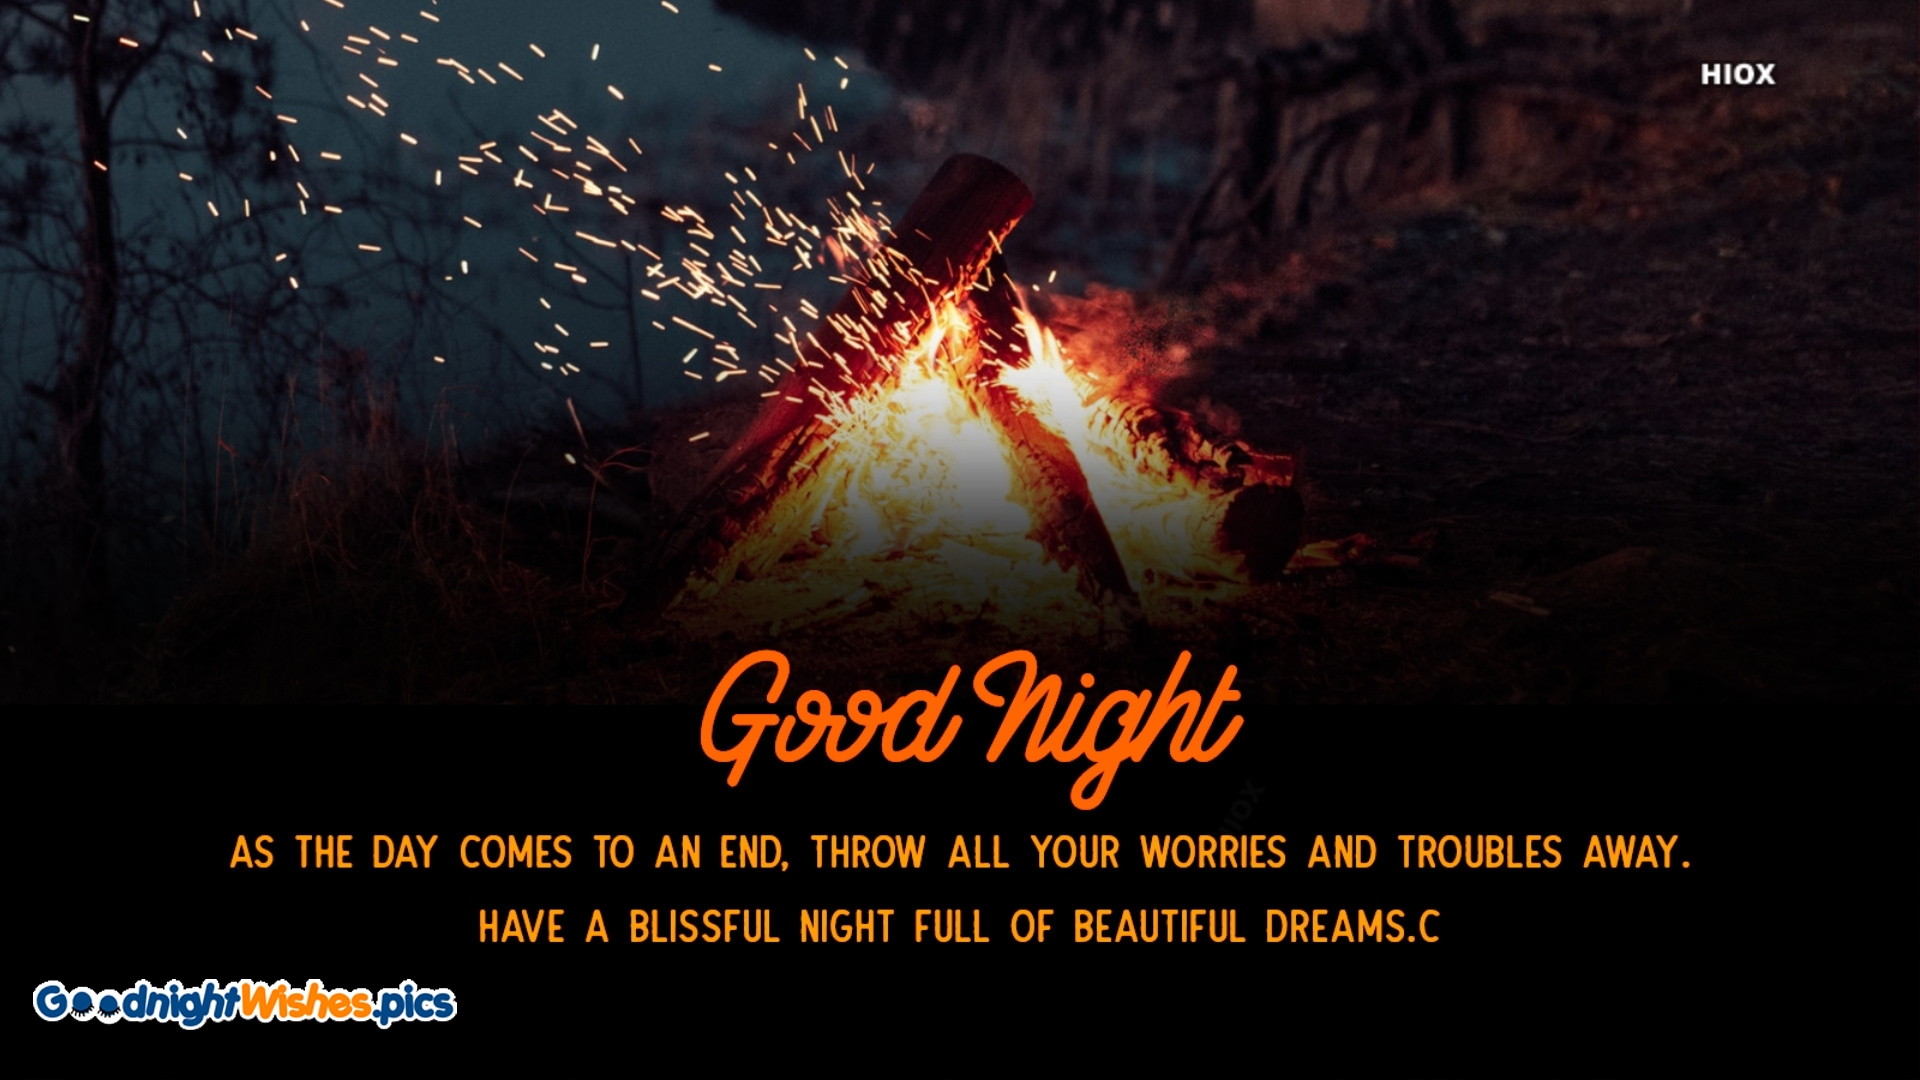 Have A Blissful Night